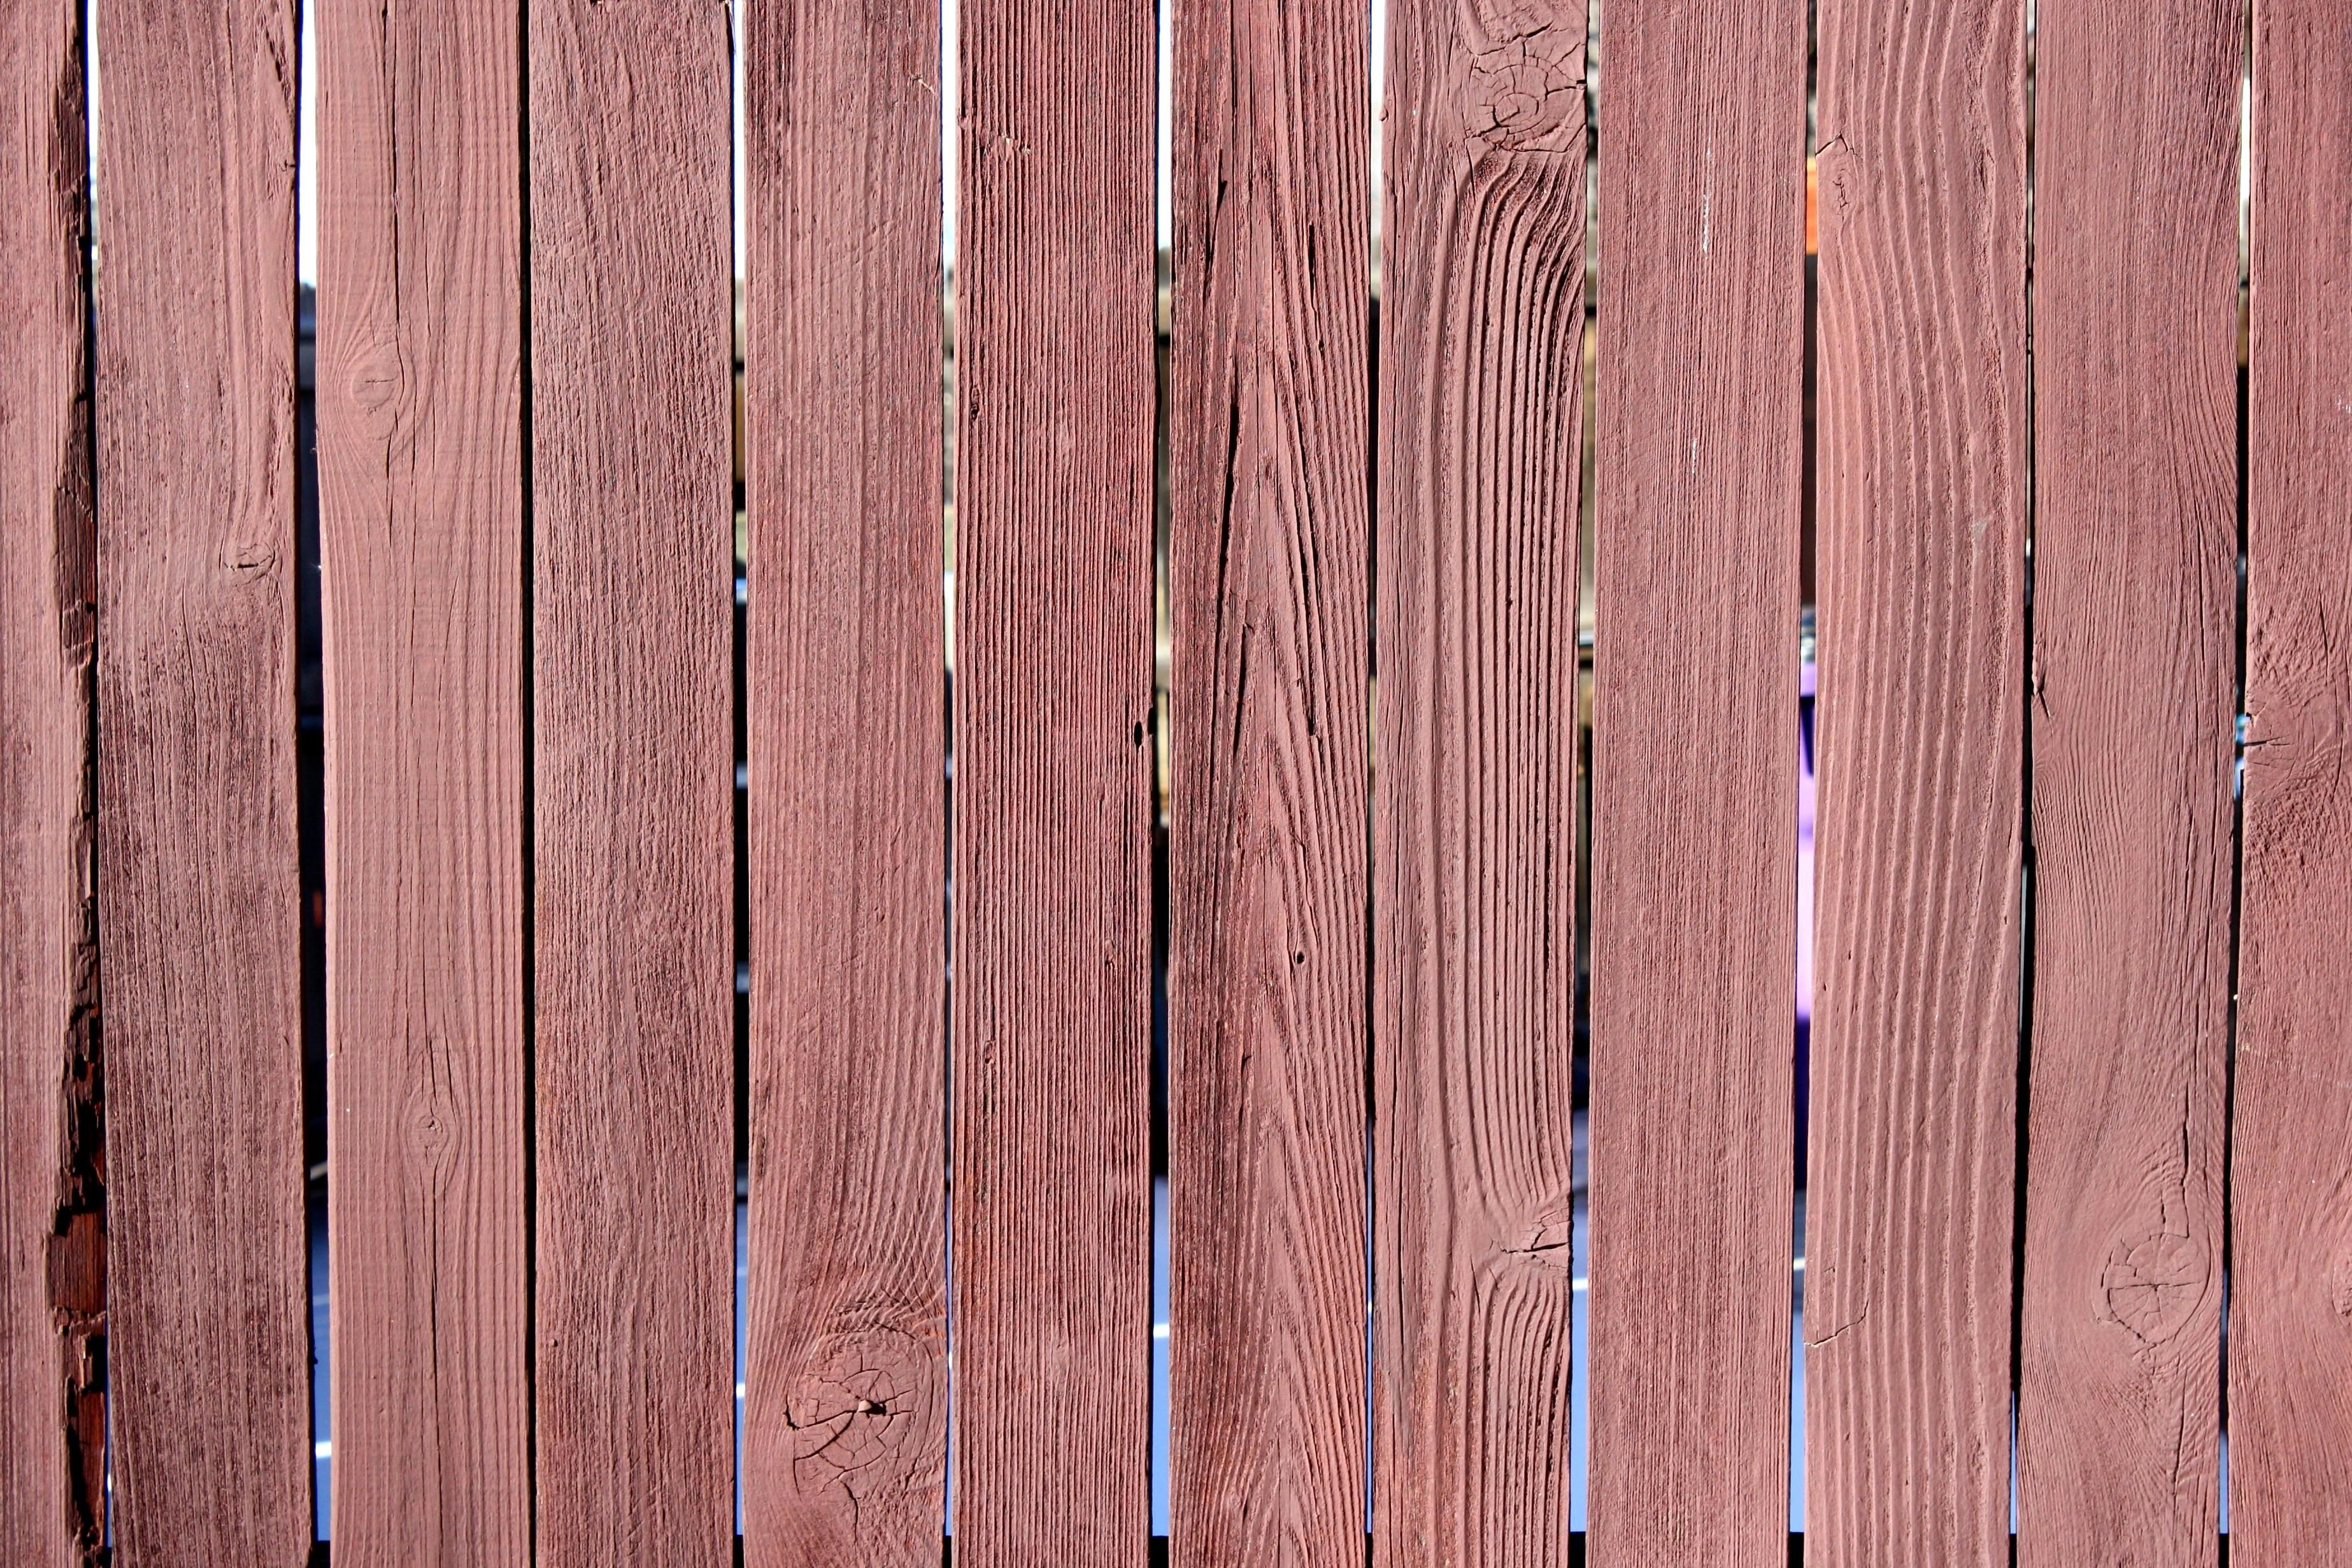 Red Stained Fence Texture Wooden Planks